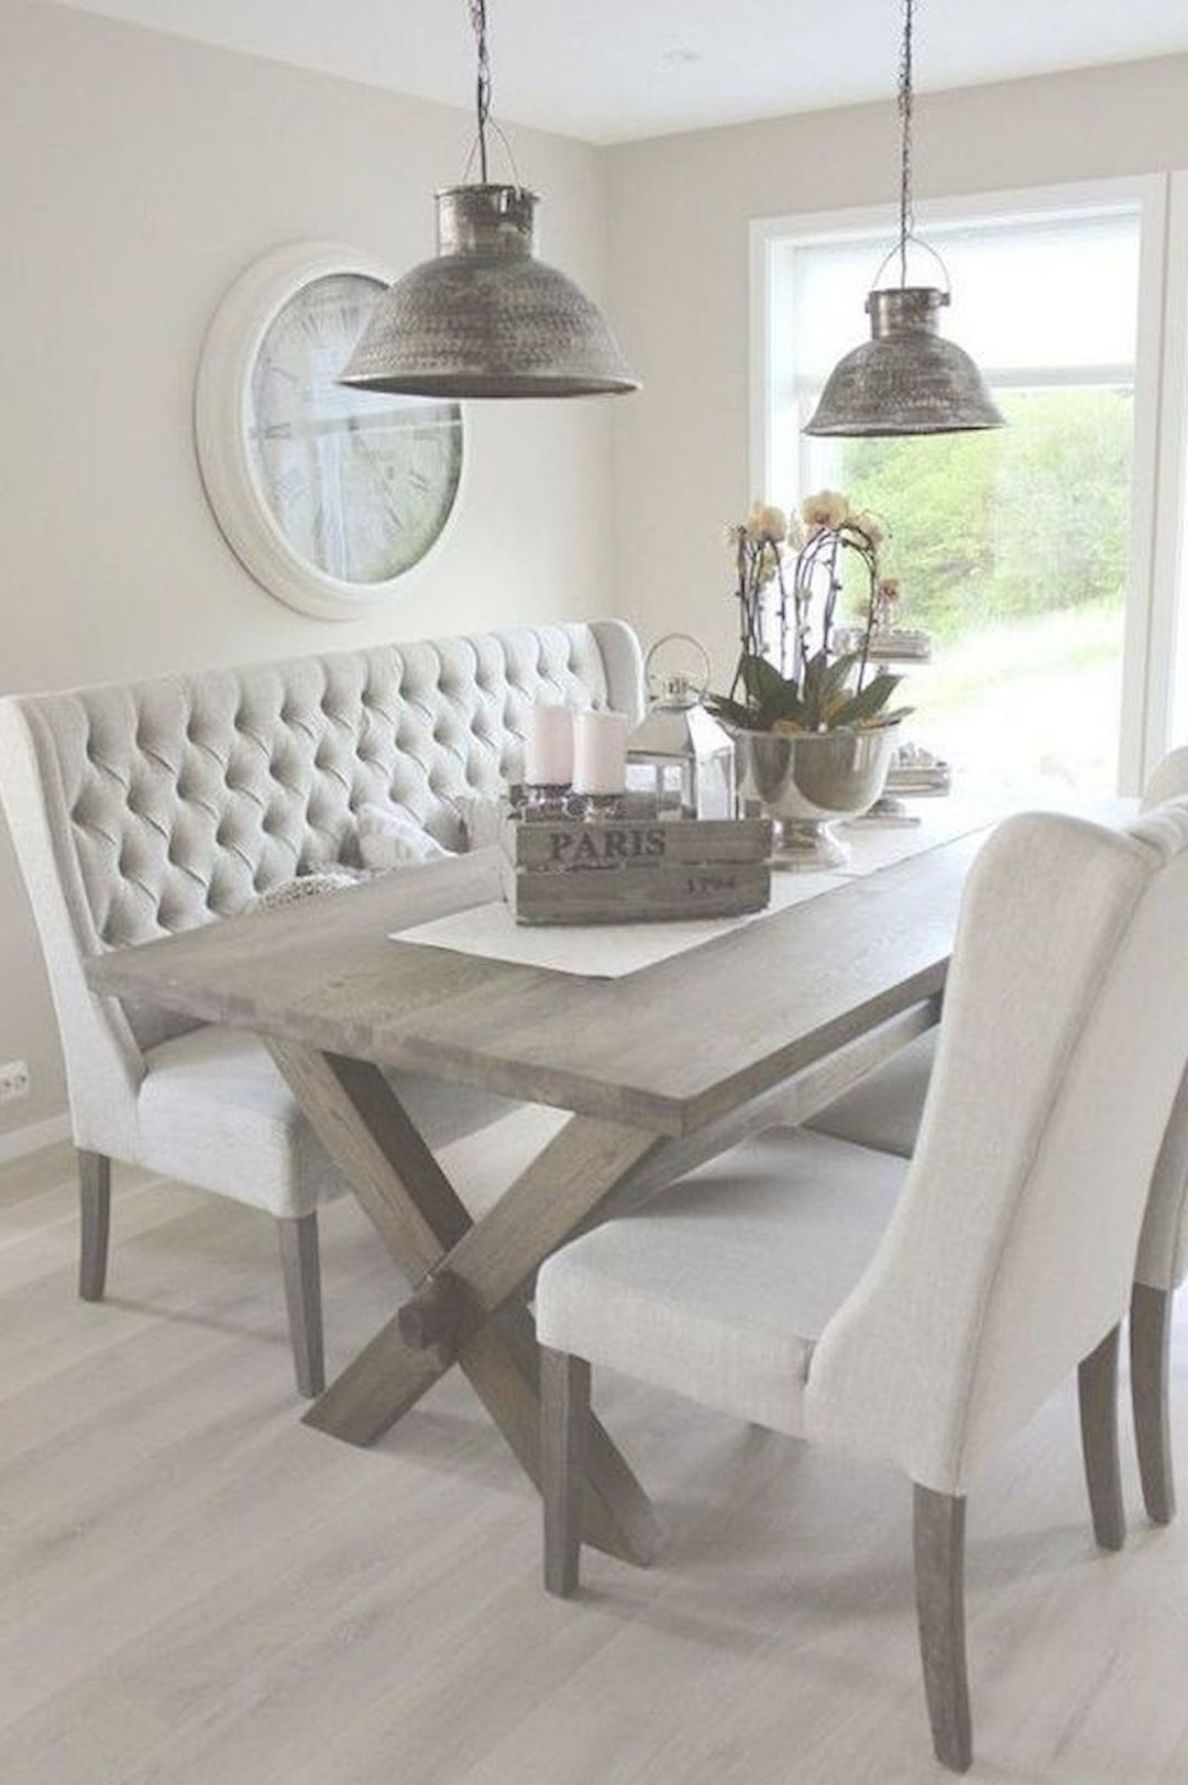 dining room table for your house 55 Stunning DIY Projects Furniture Tables Dining Rooms Design Ideas #diningroom #diningroomideas #diningroomdecor #diningroomtable